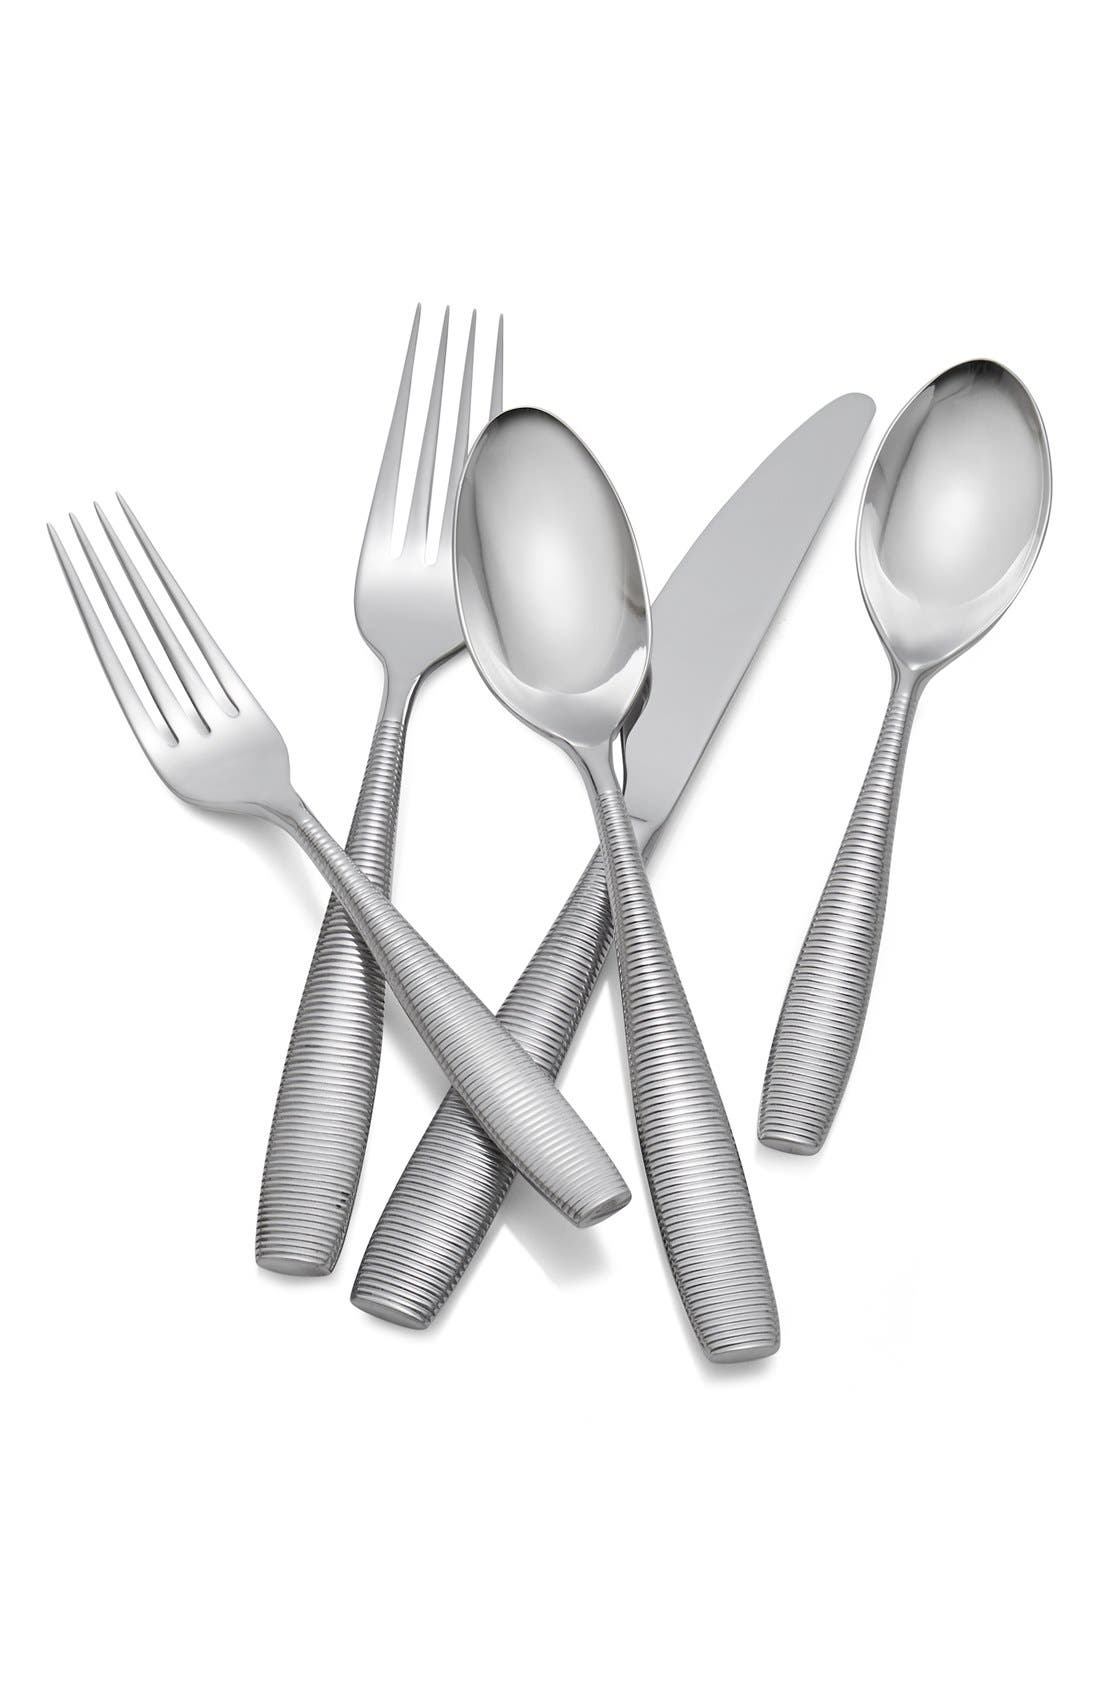 'Fiona' 5-Piece Stainless Steel Place Setting,                         Main,                         color, Silver